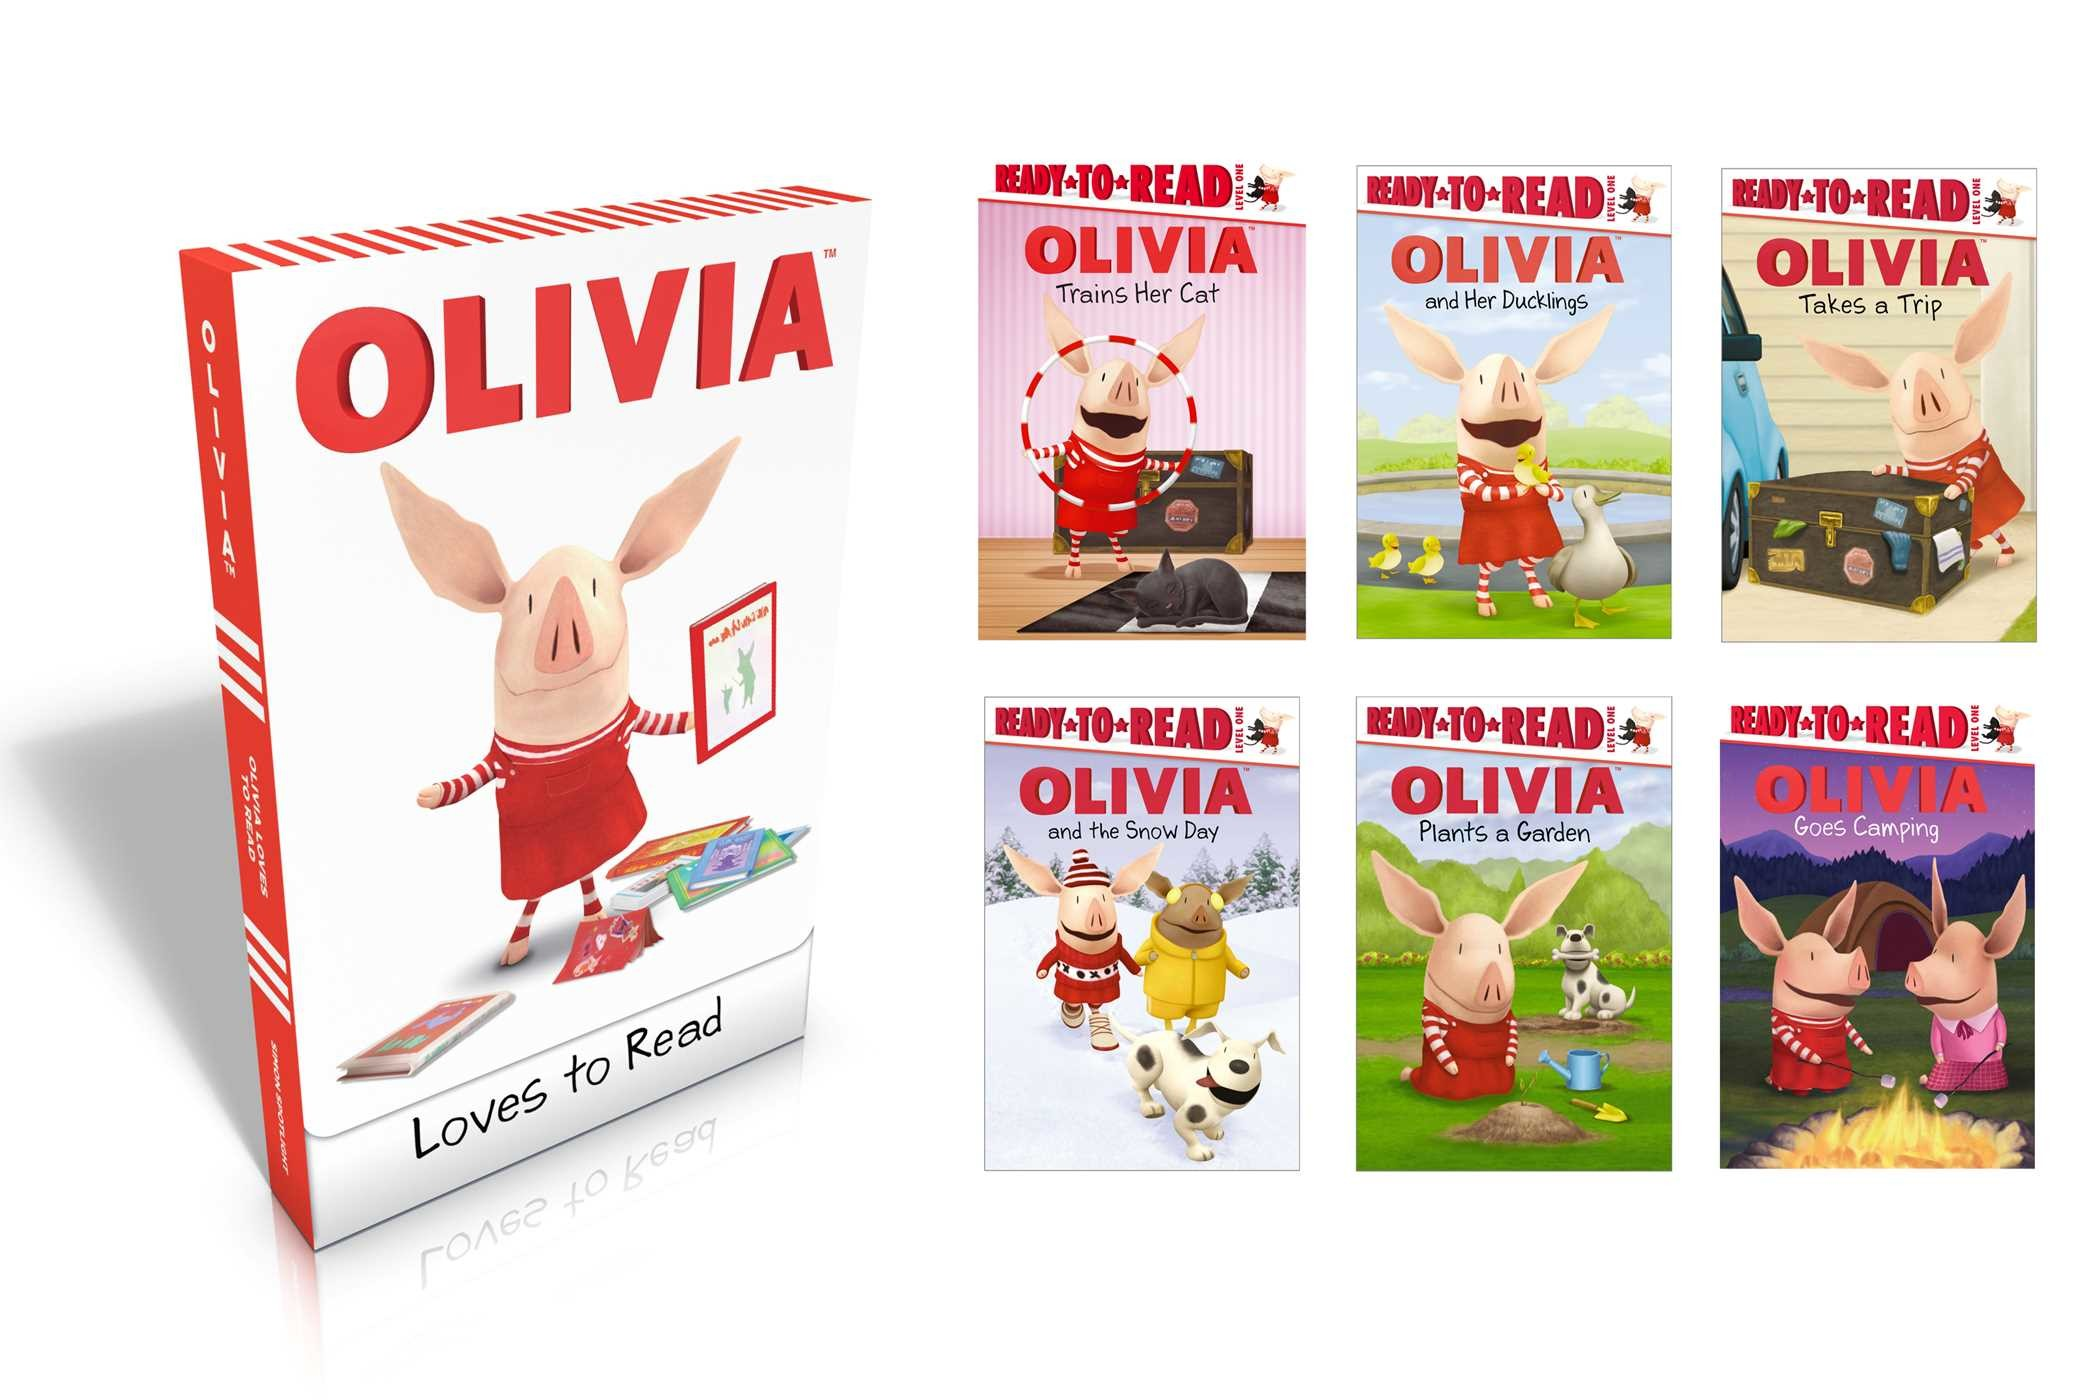 Olivia-loves-to-read-9781442458796.in01